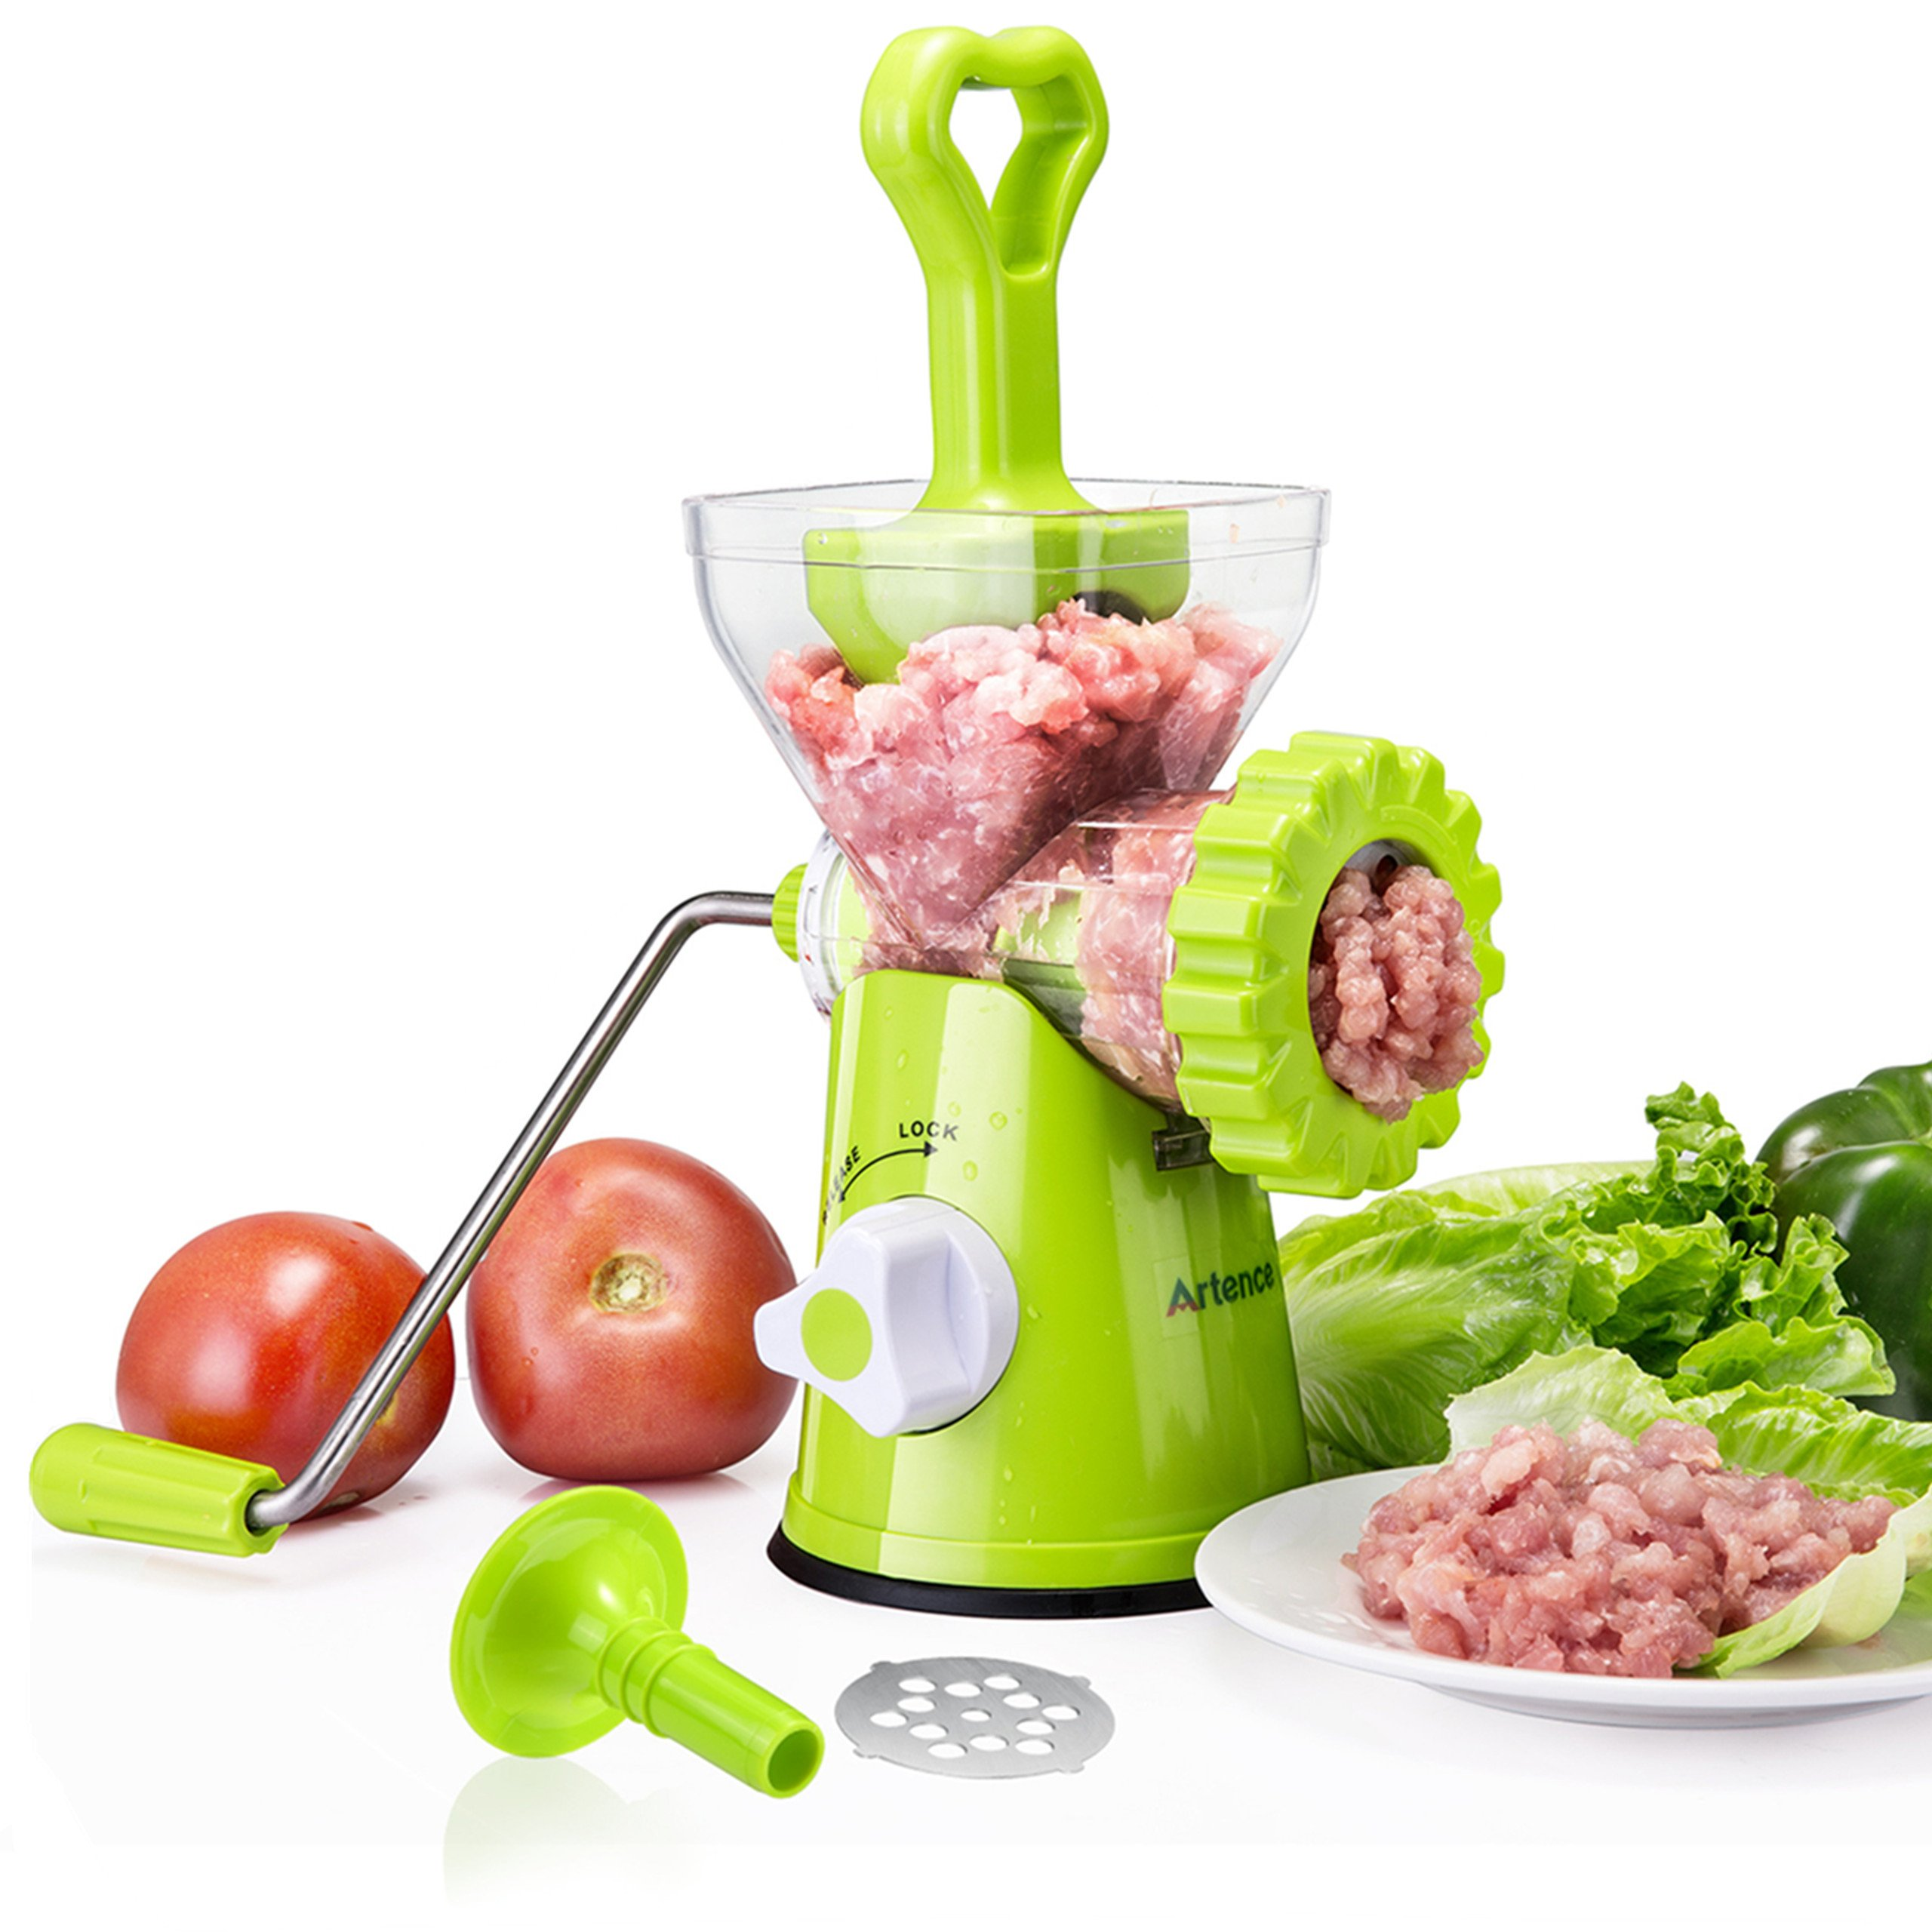 Artence Meat Grinder,Stainless Steel Plate,Powerful Suction Base,Fast and Effortless for All Meats,Fats,Nuts,Cookies,Cooked Food,perfect for making burgers and Sausage